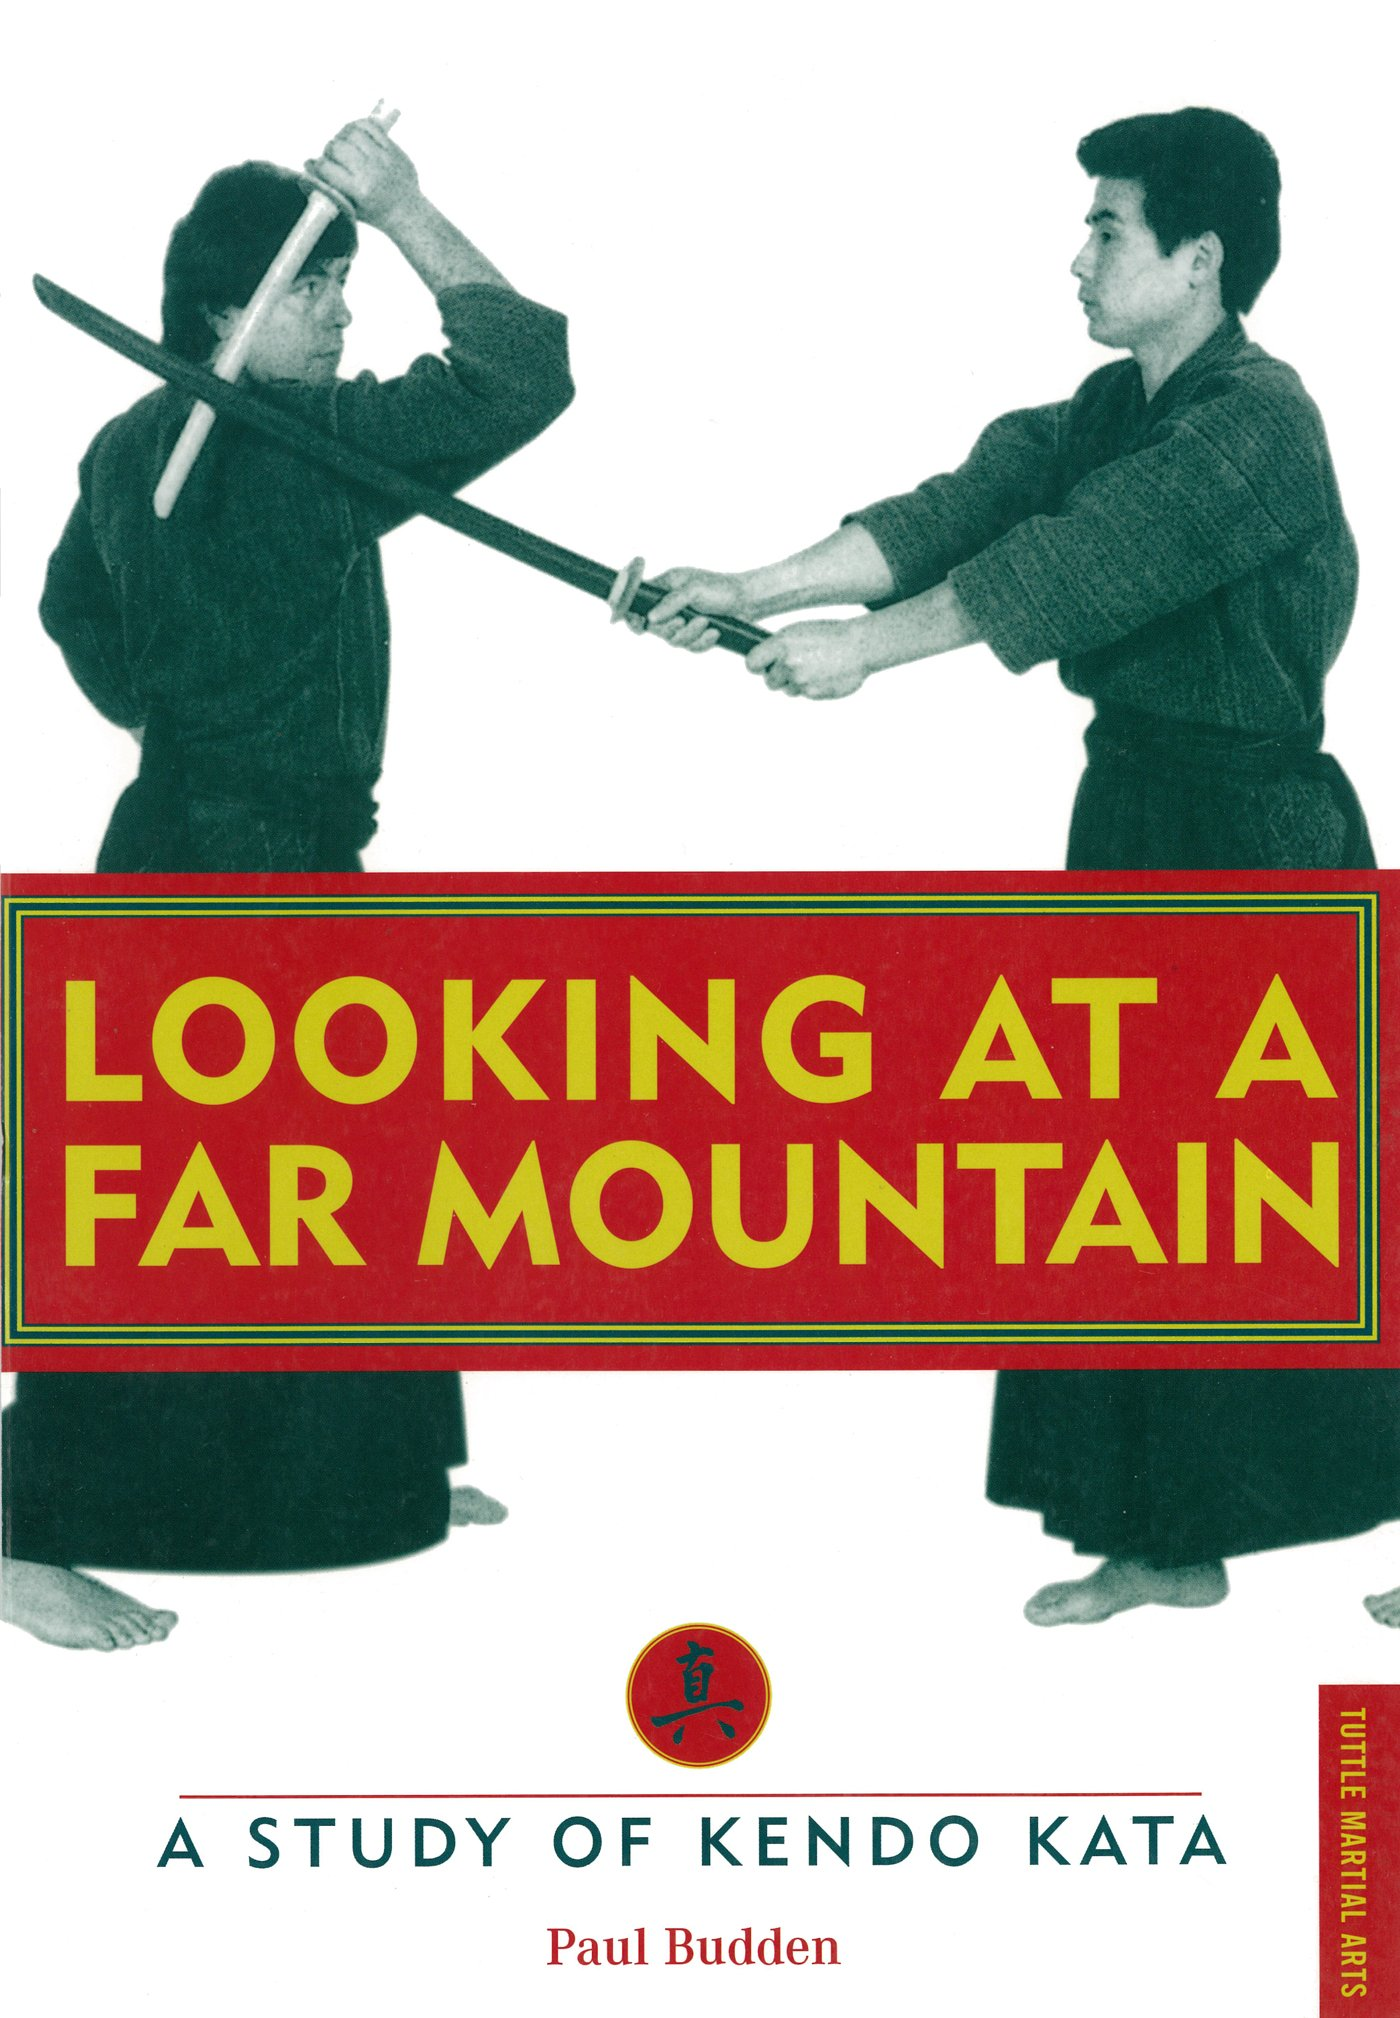 Looking at a Far Mountain: A Study of Kendo Kata (Tuttle Martial Arts) (English Edition)